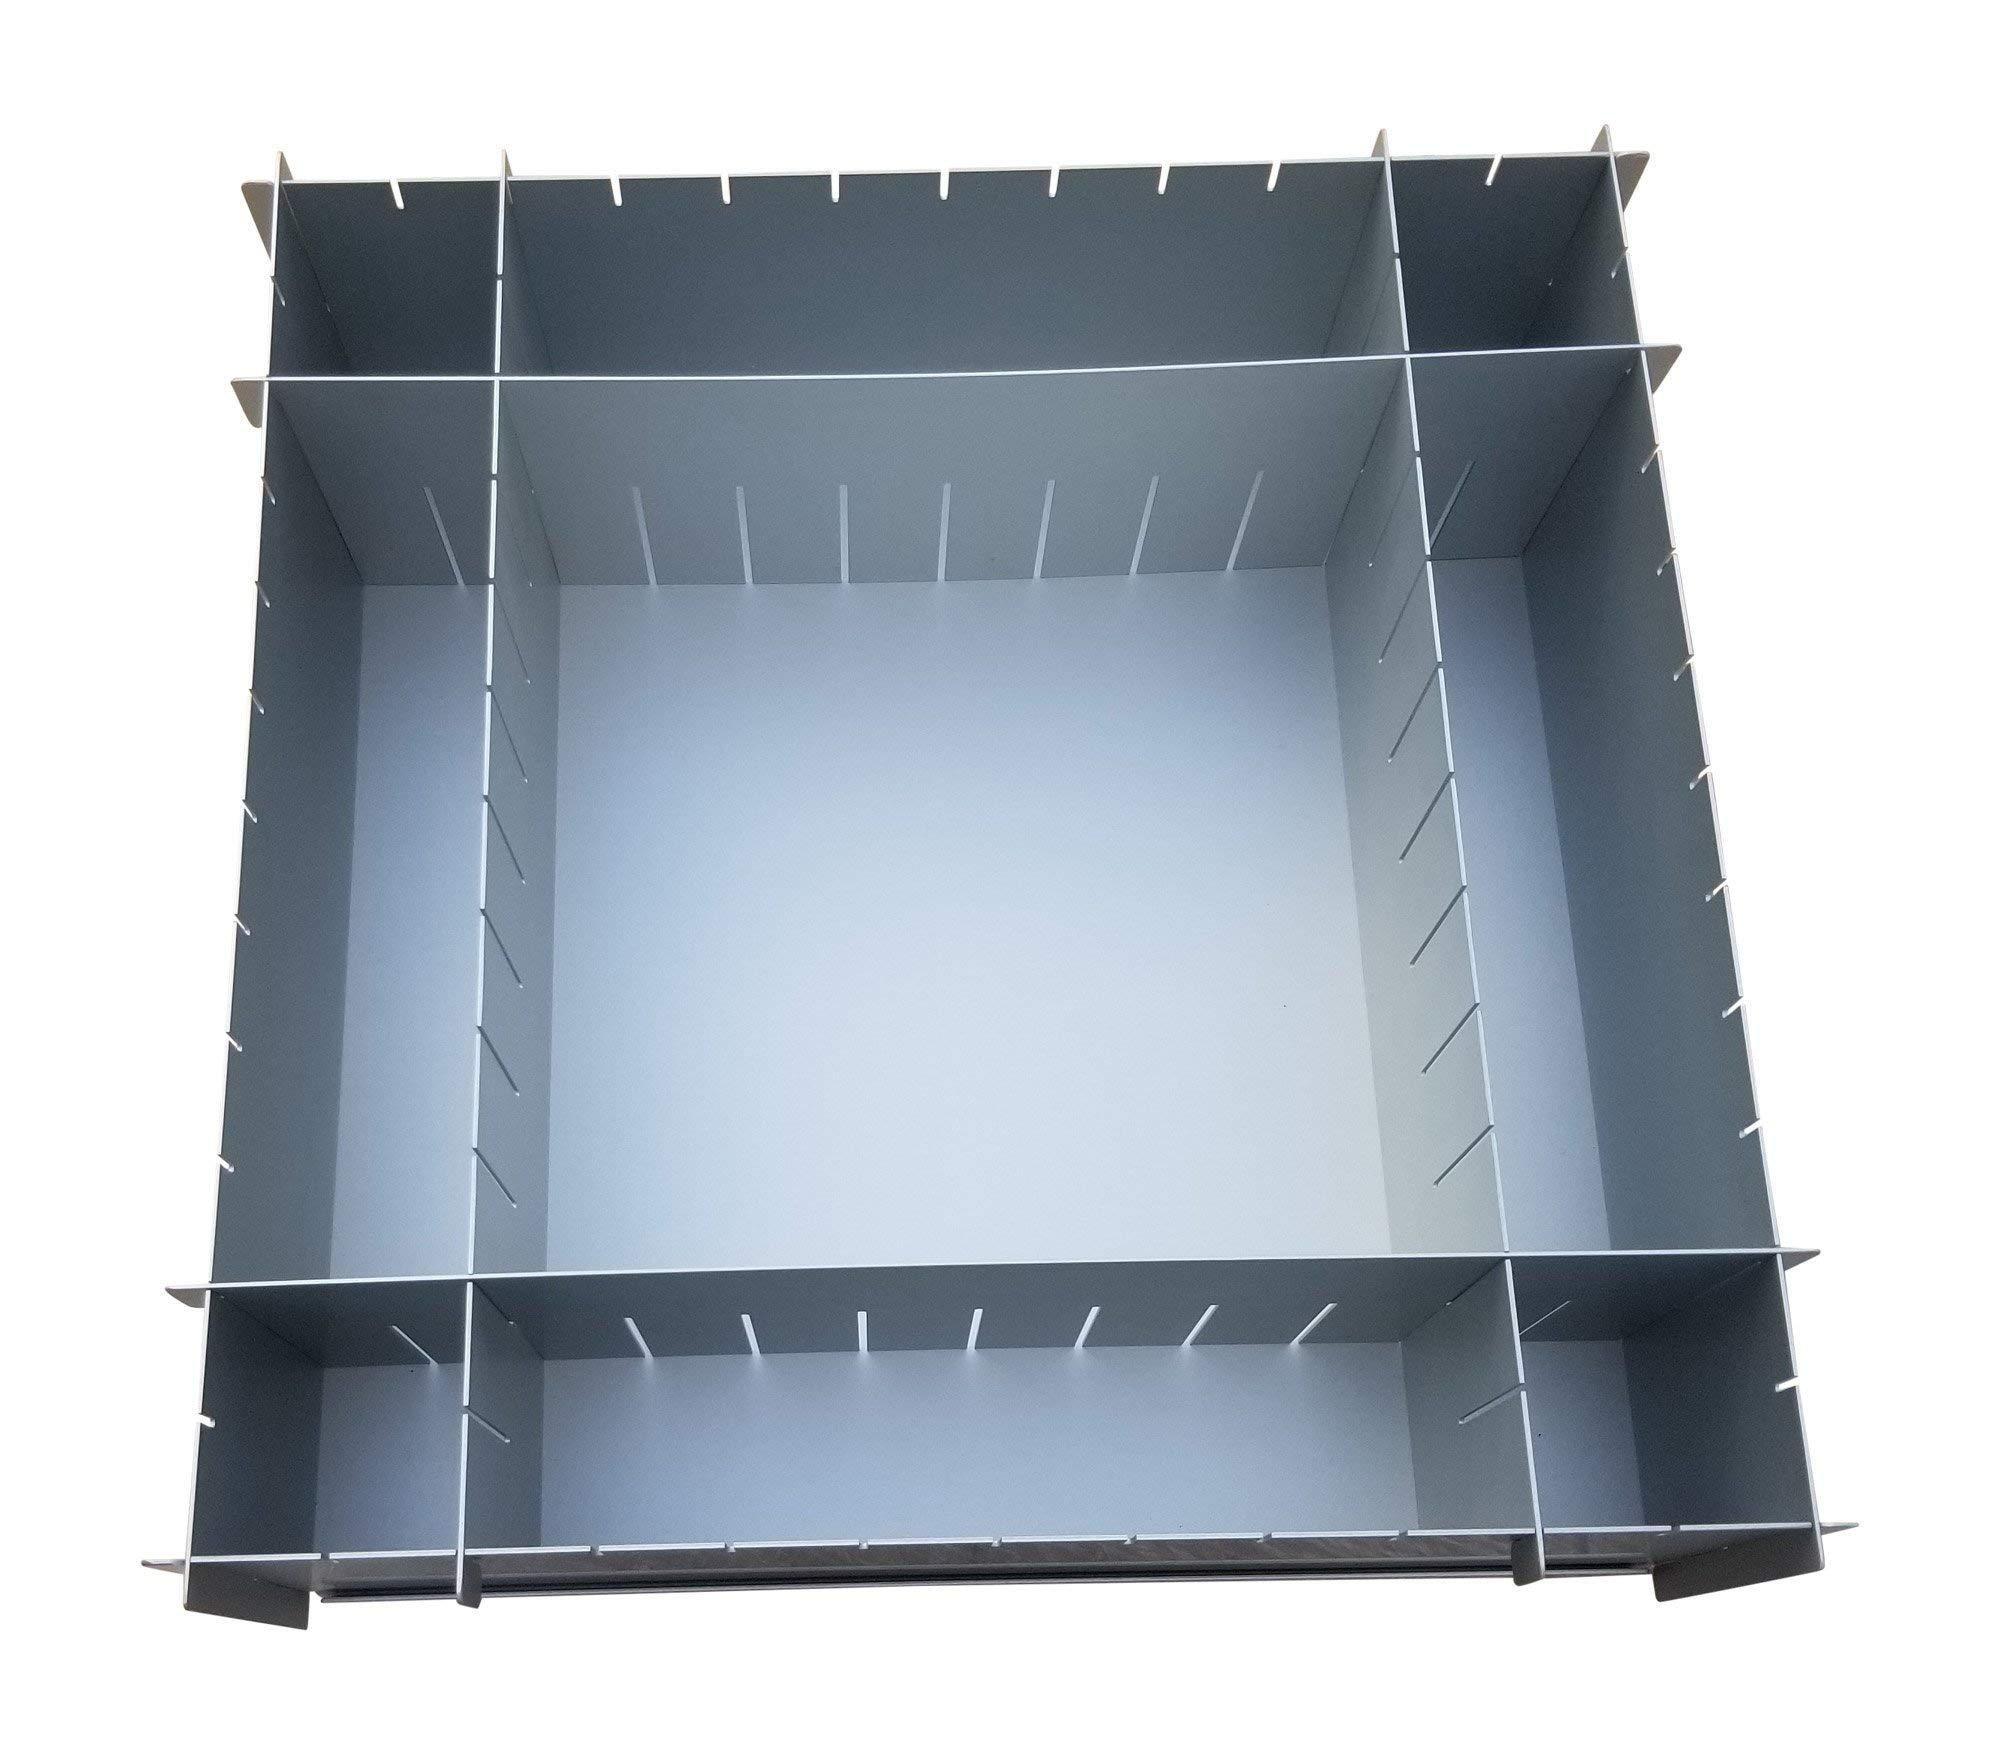 12'' x 4'' Deep Multisize Cake Pan With Extra Set Of Dividers - 4 Dividers Total - By H&L DesignWare by H&L DesignWare (Image #5)